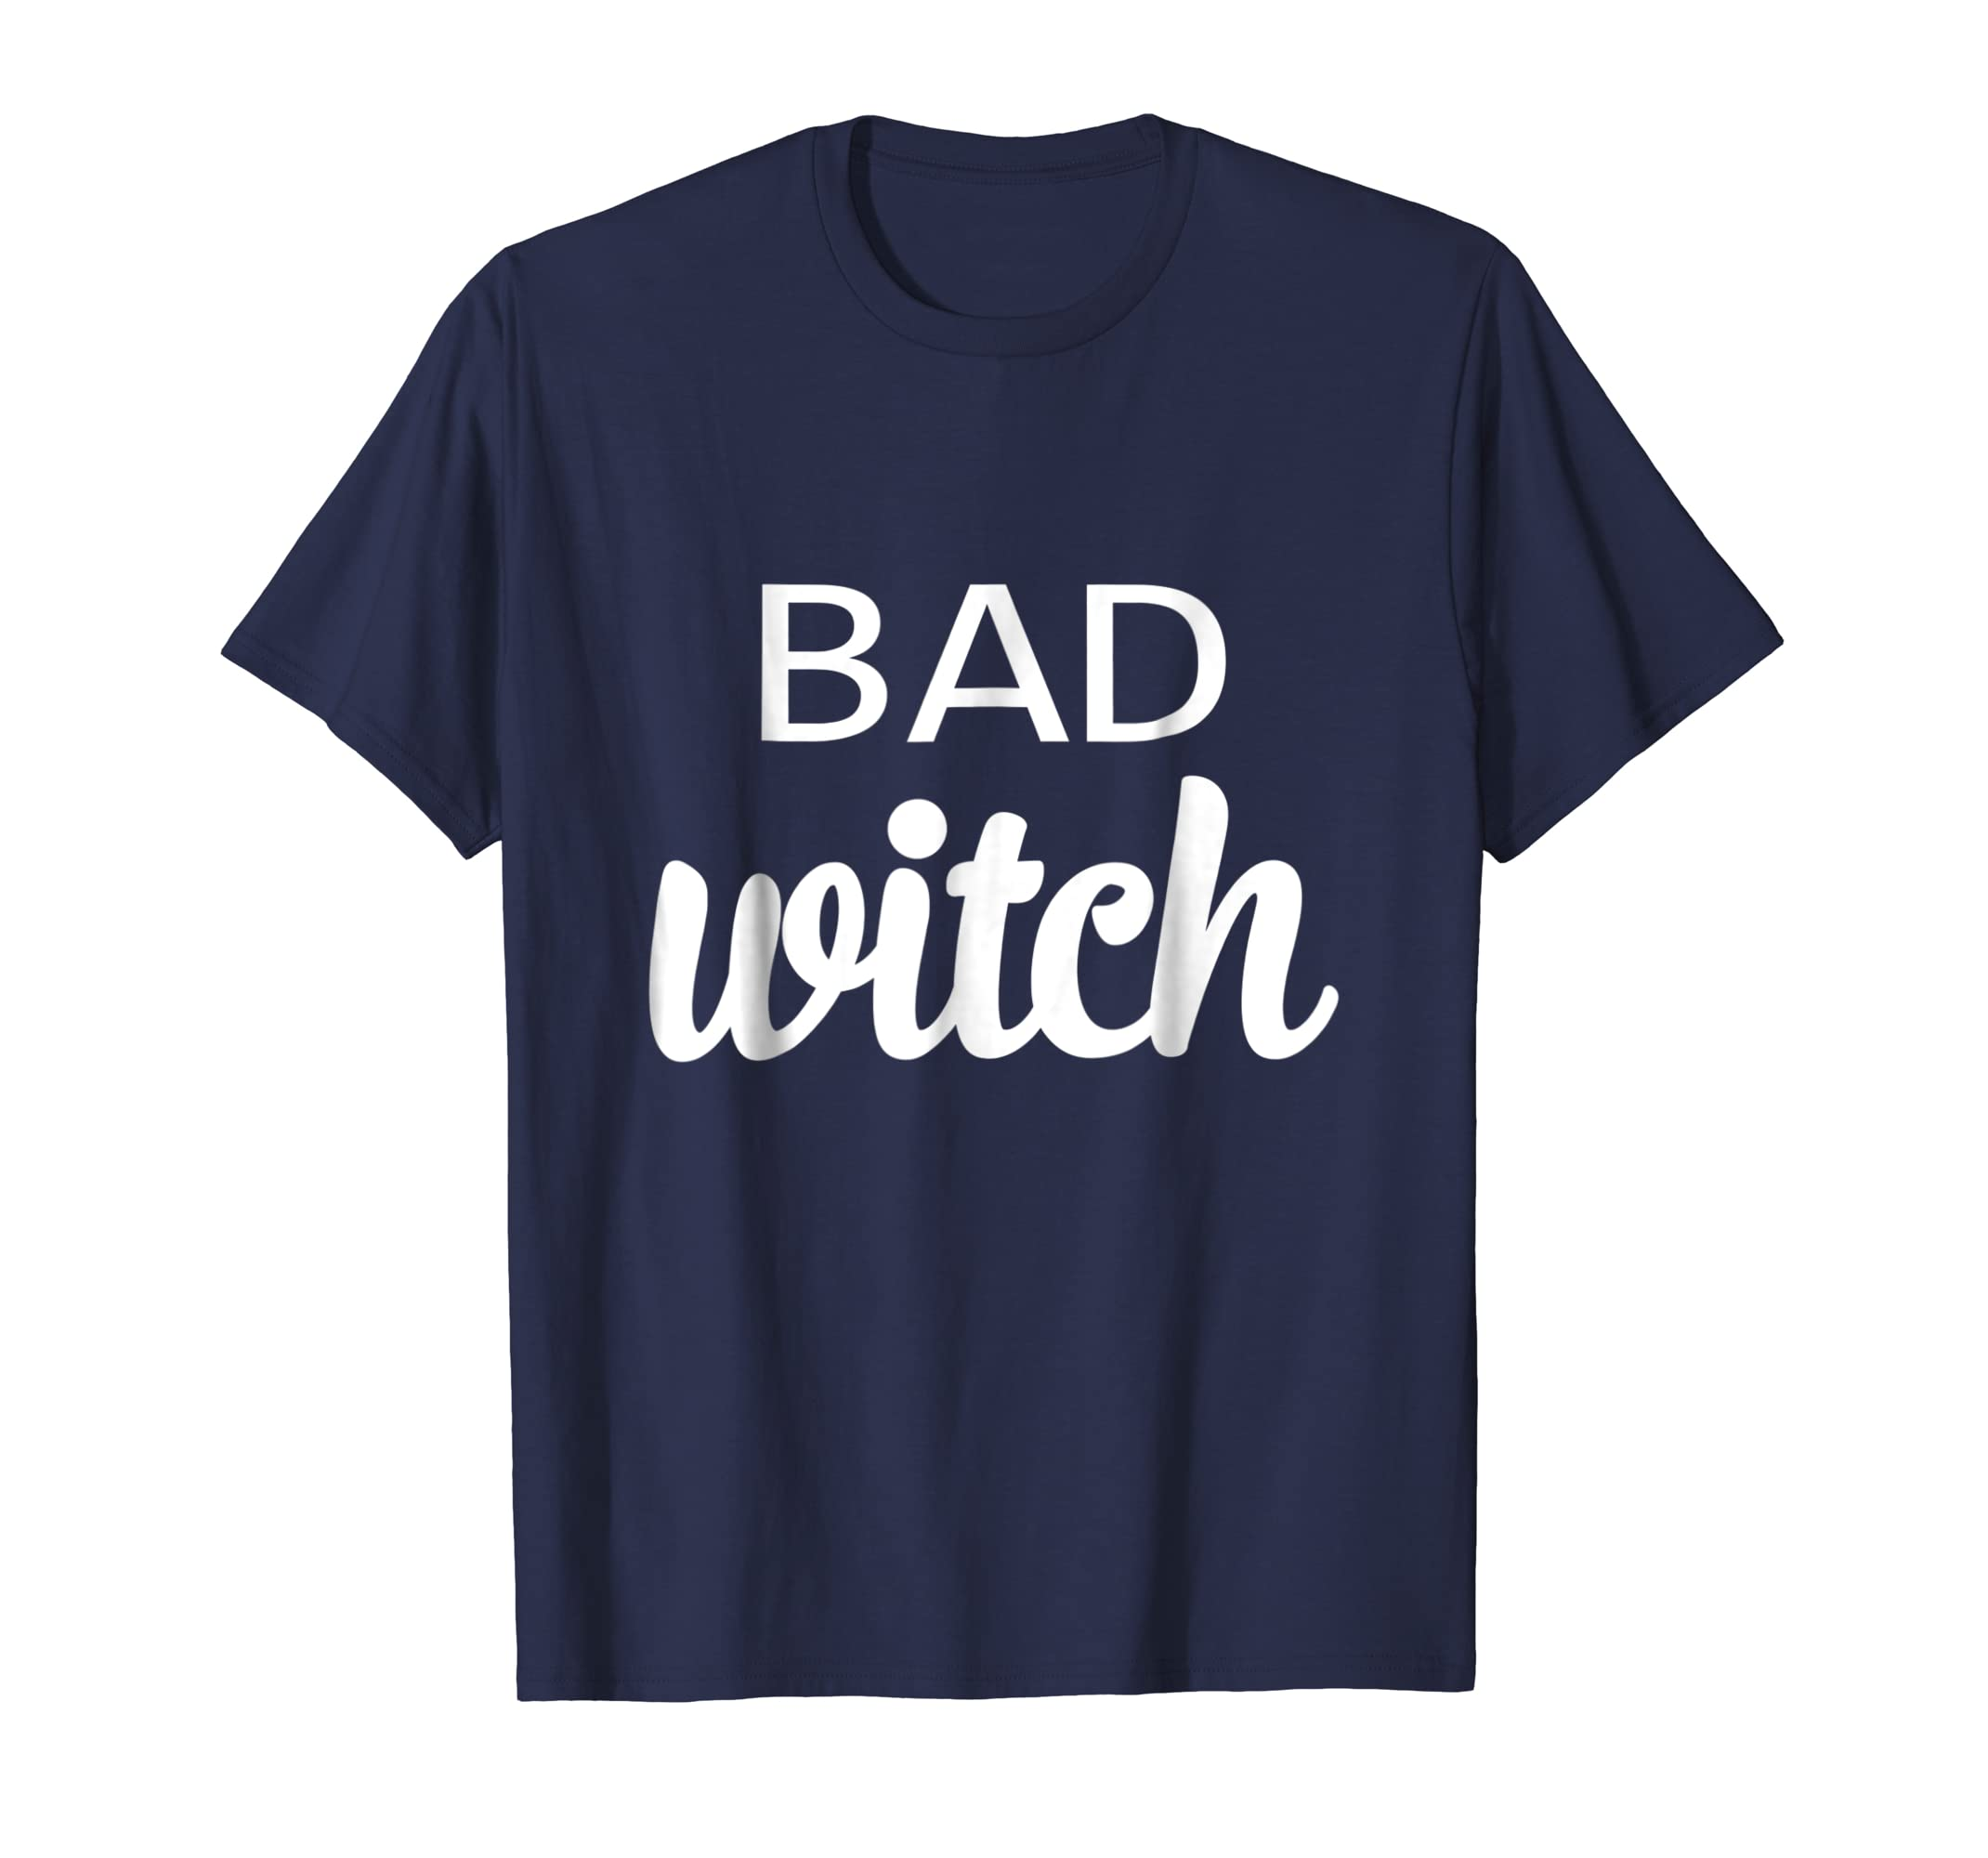 782023fa Amazon.com: Funny Matching Bad Witch Good Witch Friend Women Girl Tshirt:  Clothing